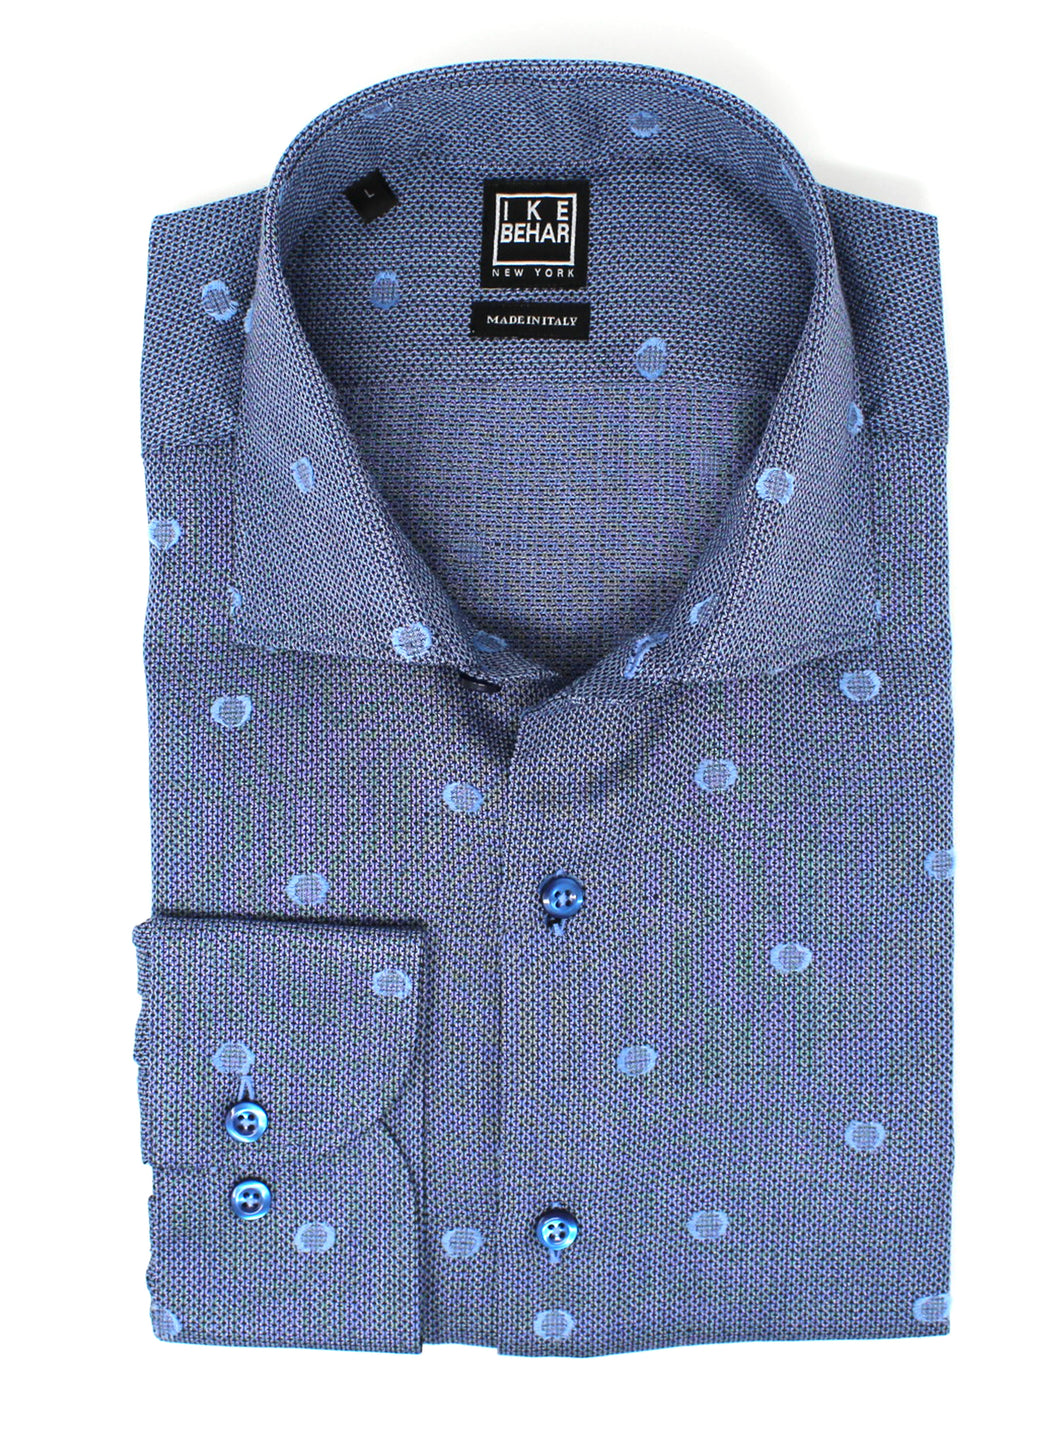 Navy with Sky Polka Dot Sport Shirt